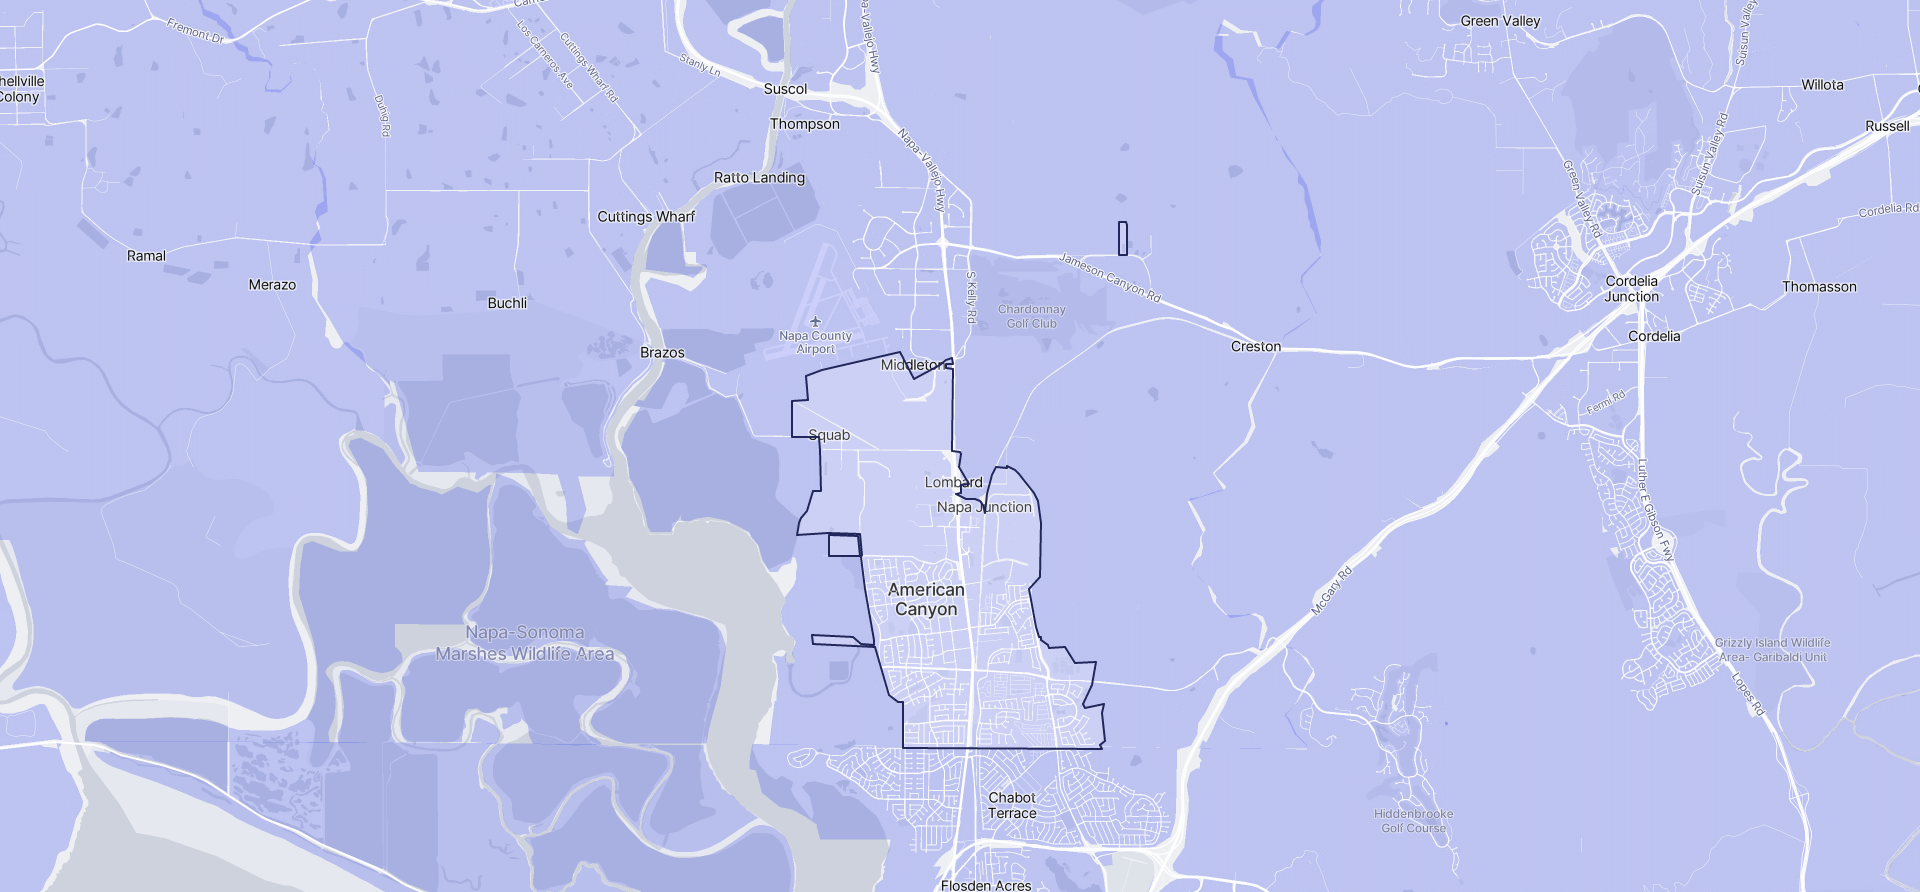 Image of American Canyon boundaries on a map.